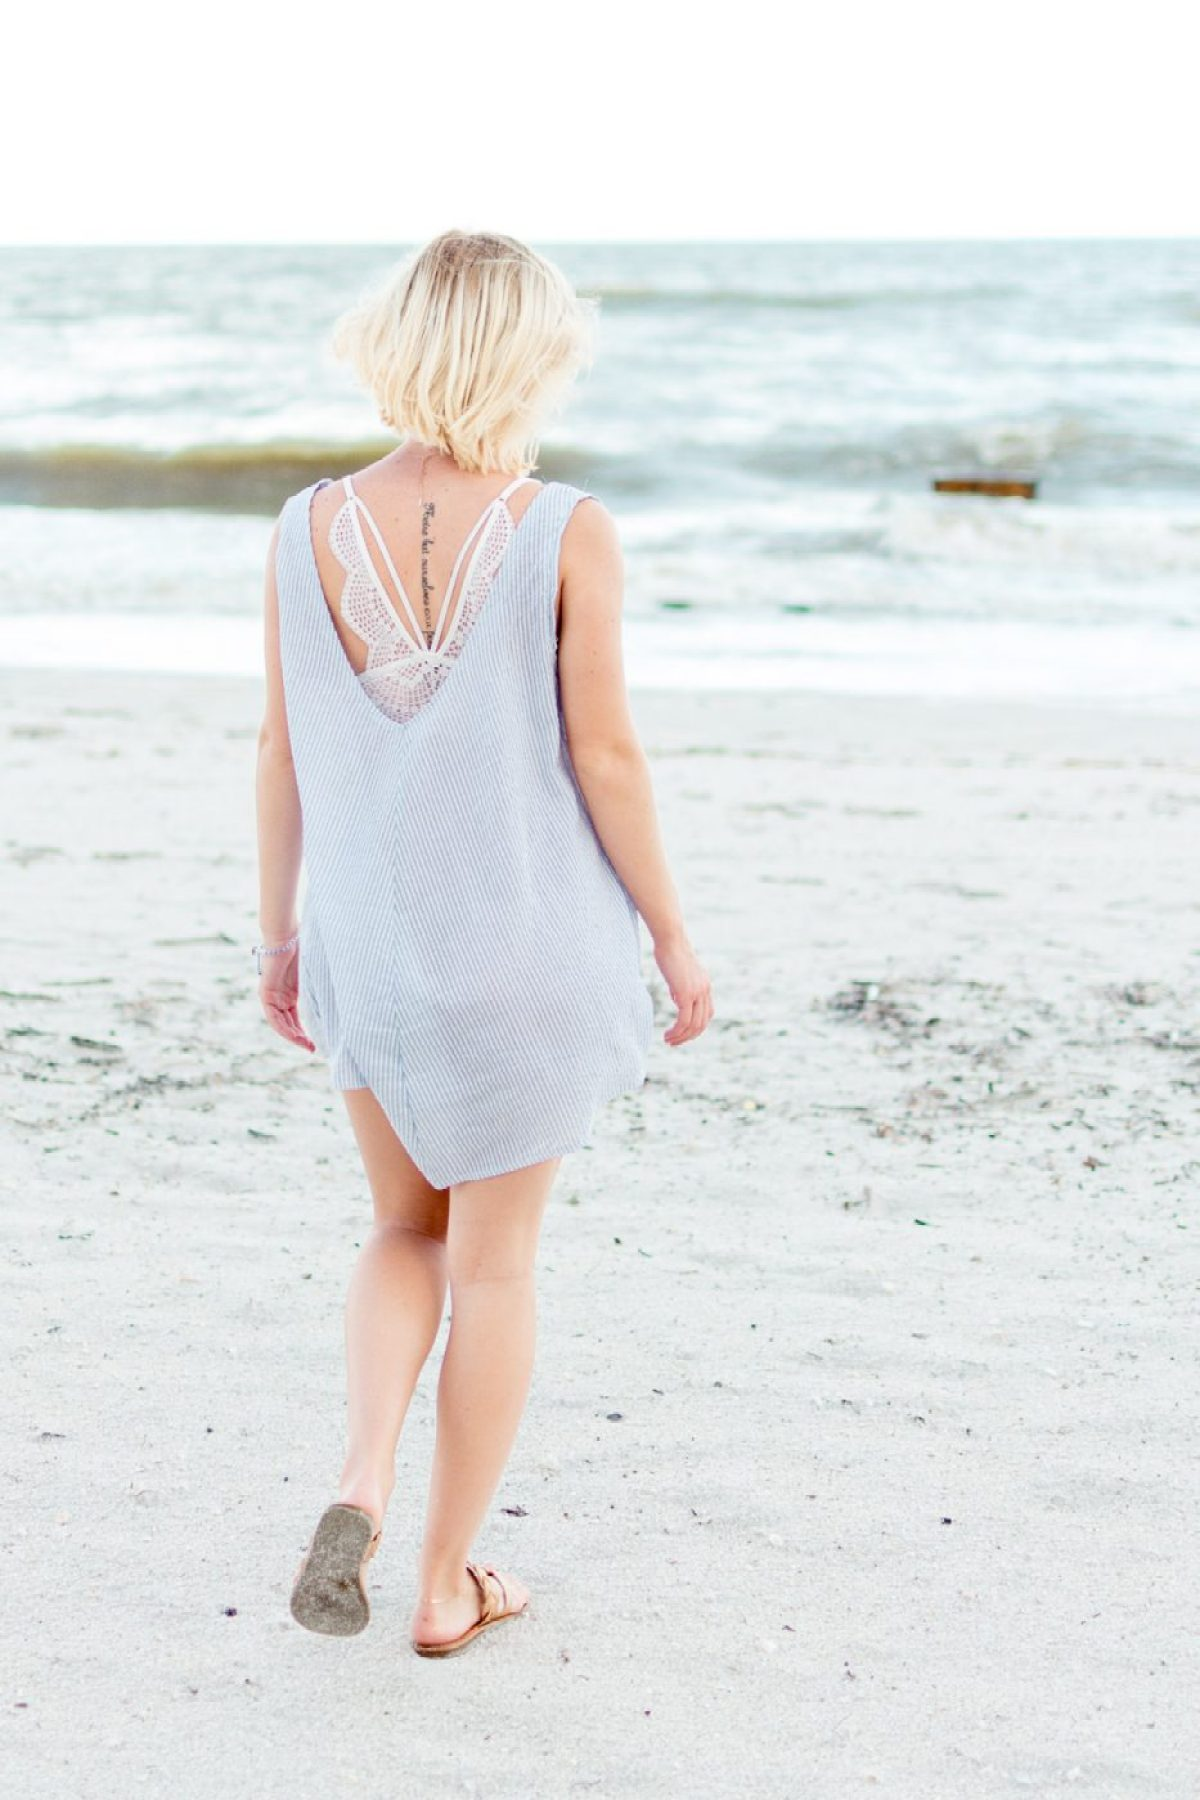 Cotton dress on the beach with Victoria's Secret barrette - Sweet Teal